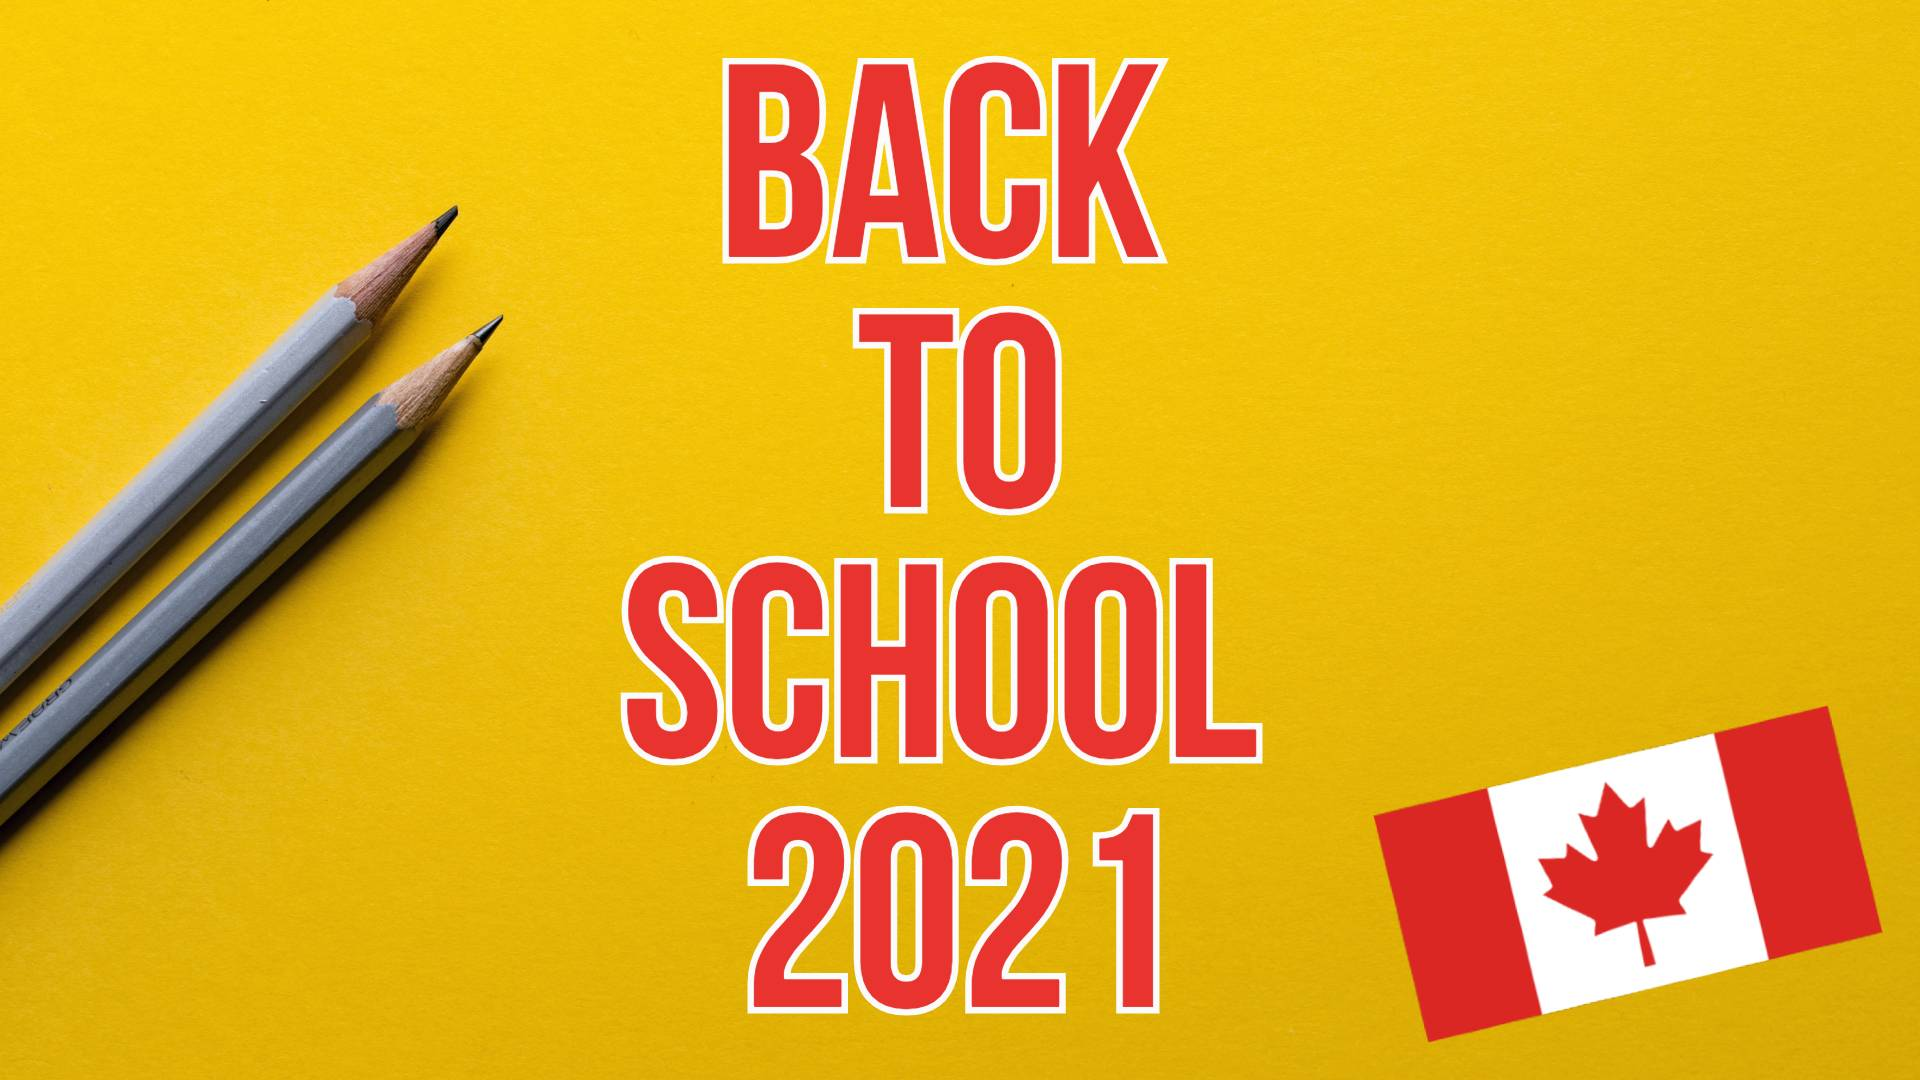 Back to school in Canada 2021